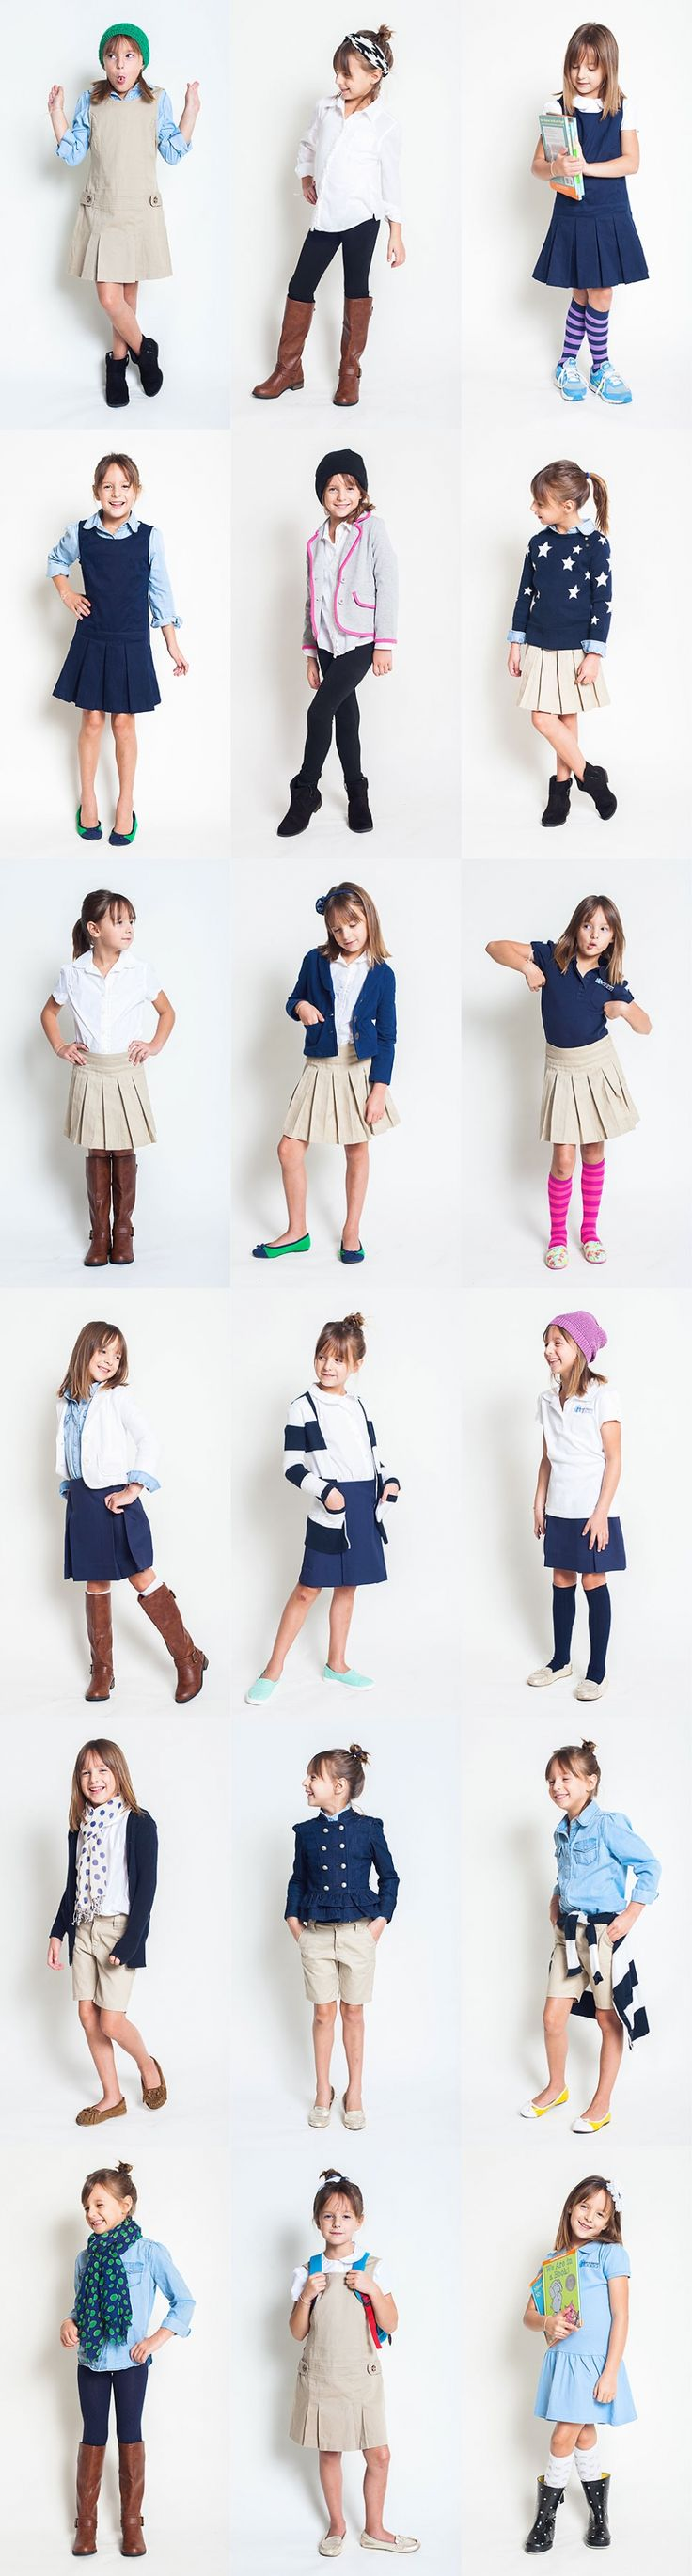 School Uniform Style Project! |E will have plaid dress, plaid skirt, khaki skirt, charcoal pants or skirts, navy tops or navy cardi w/ logo